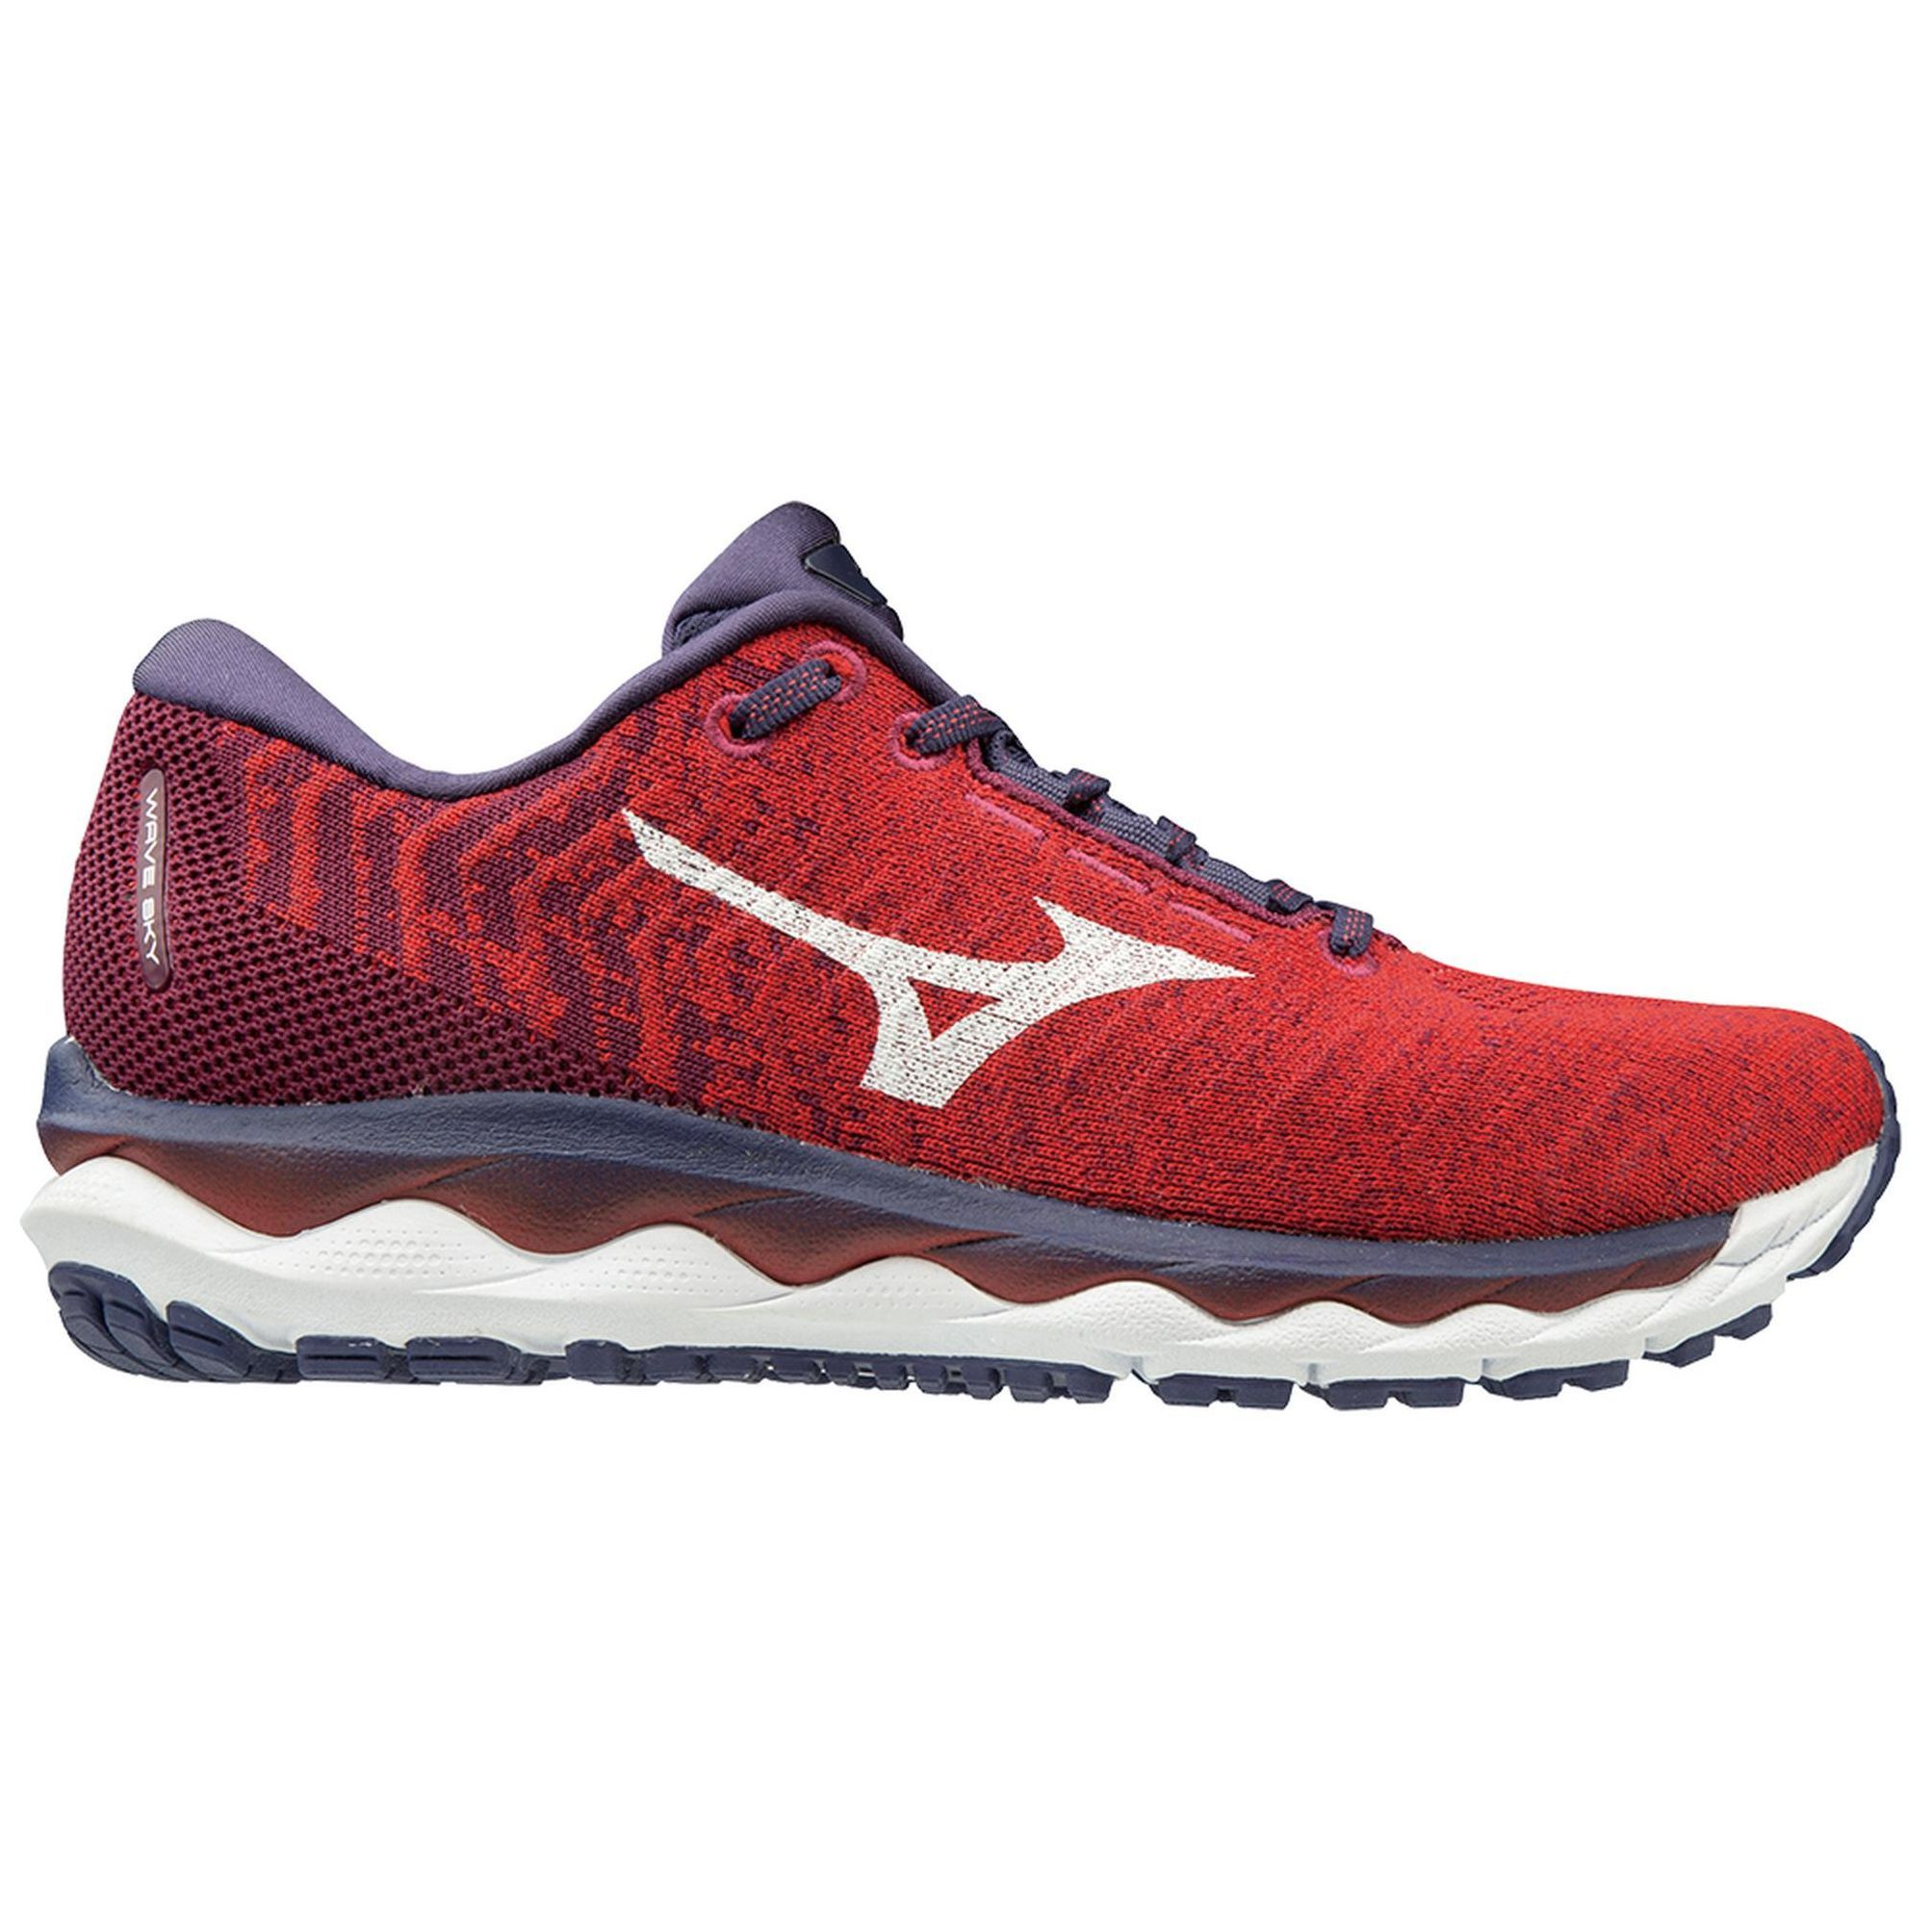 best mizuno running shoes for flat feet 80s